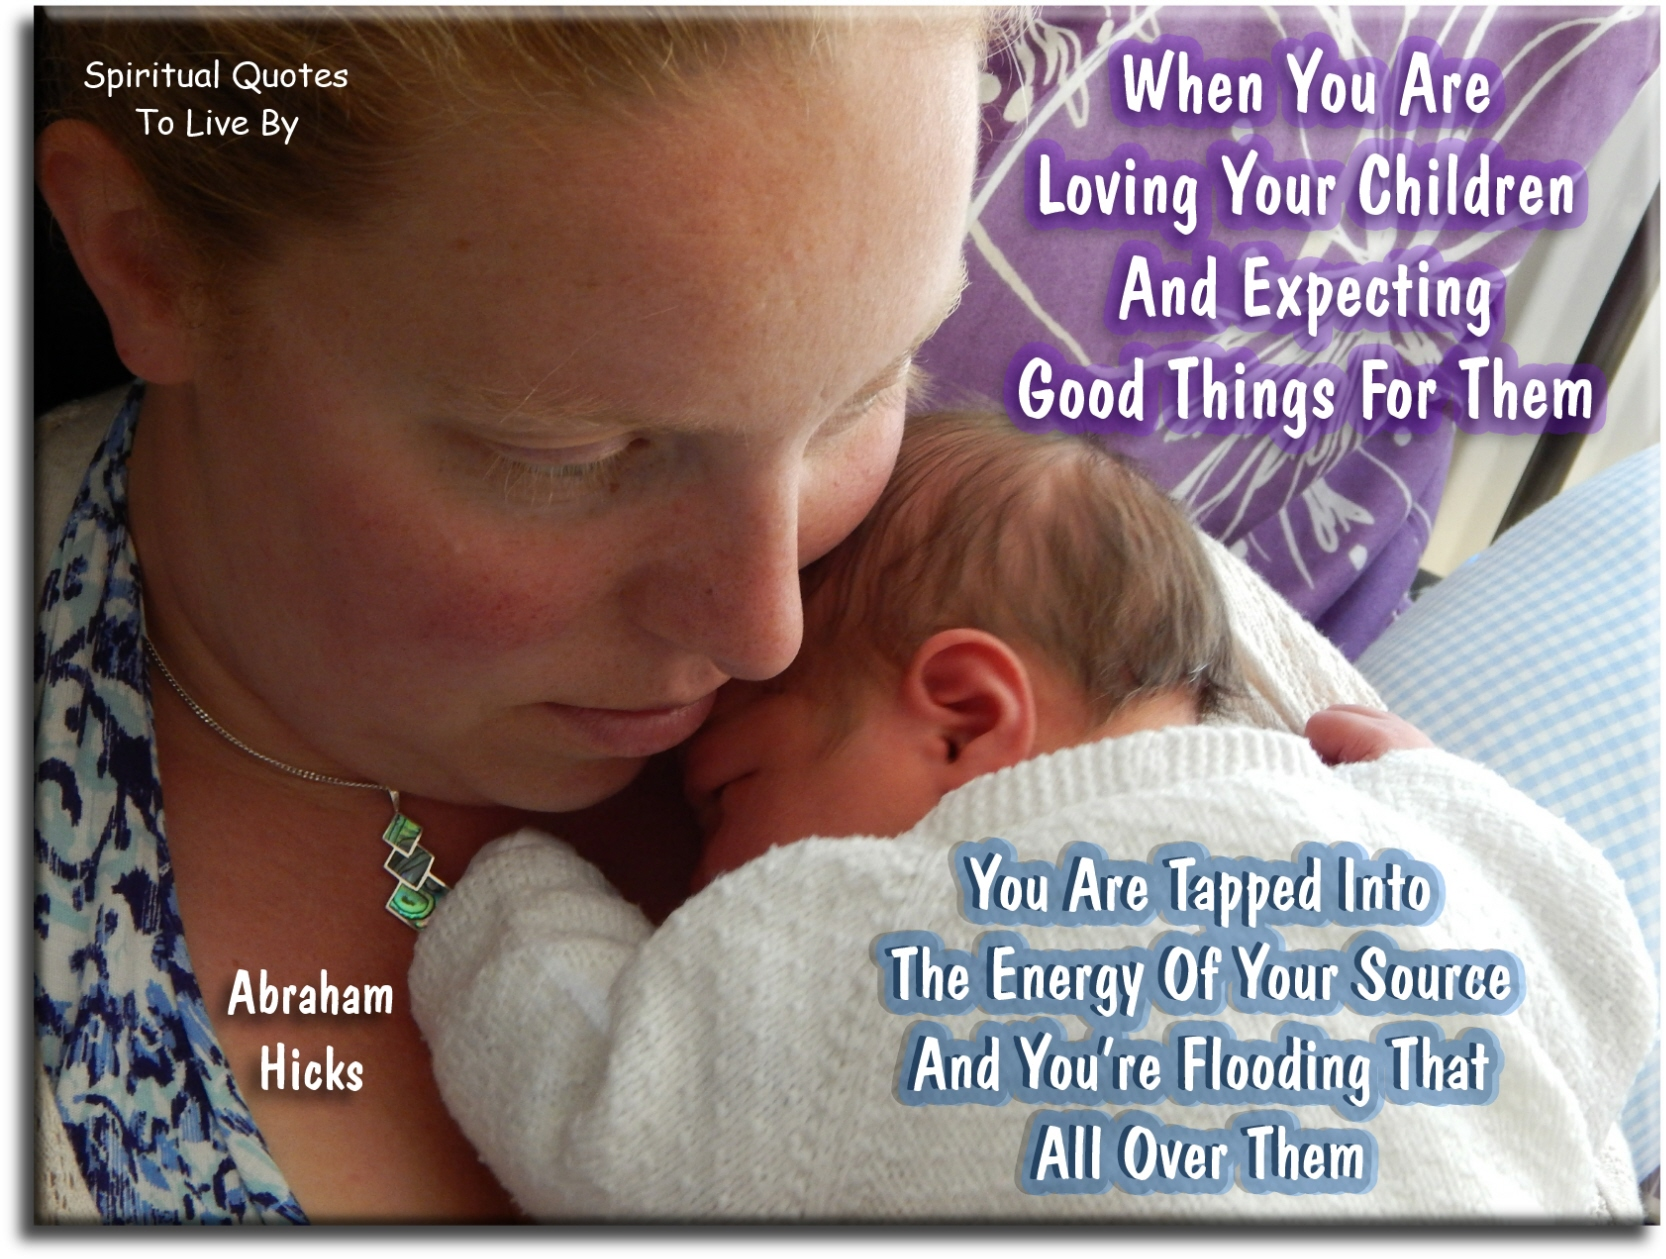 When you are loving your children and expecting good things for them, you are tapped into the energy of your Source and you're flooding that all over them - Abraham-Hicks - Spiritual Quotes To Live By